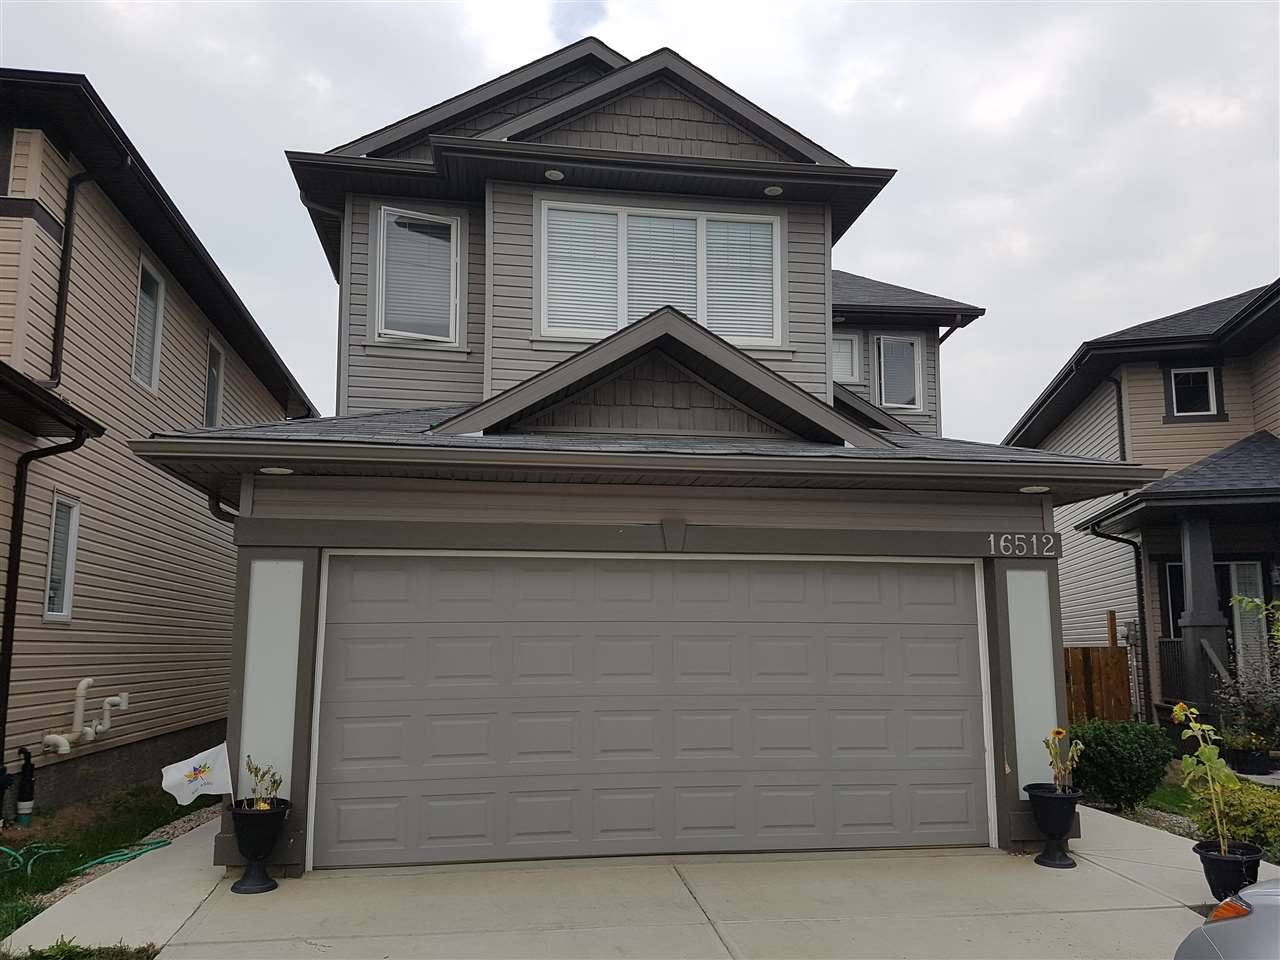 Main Photo: 16512 42 Street in Edmonton: Zone 03 House for sale : MLS® # E4088446